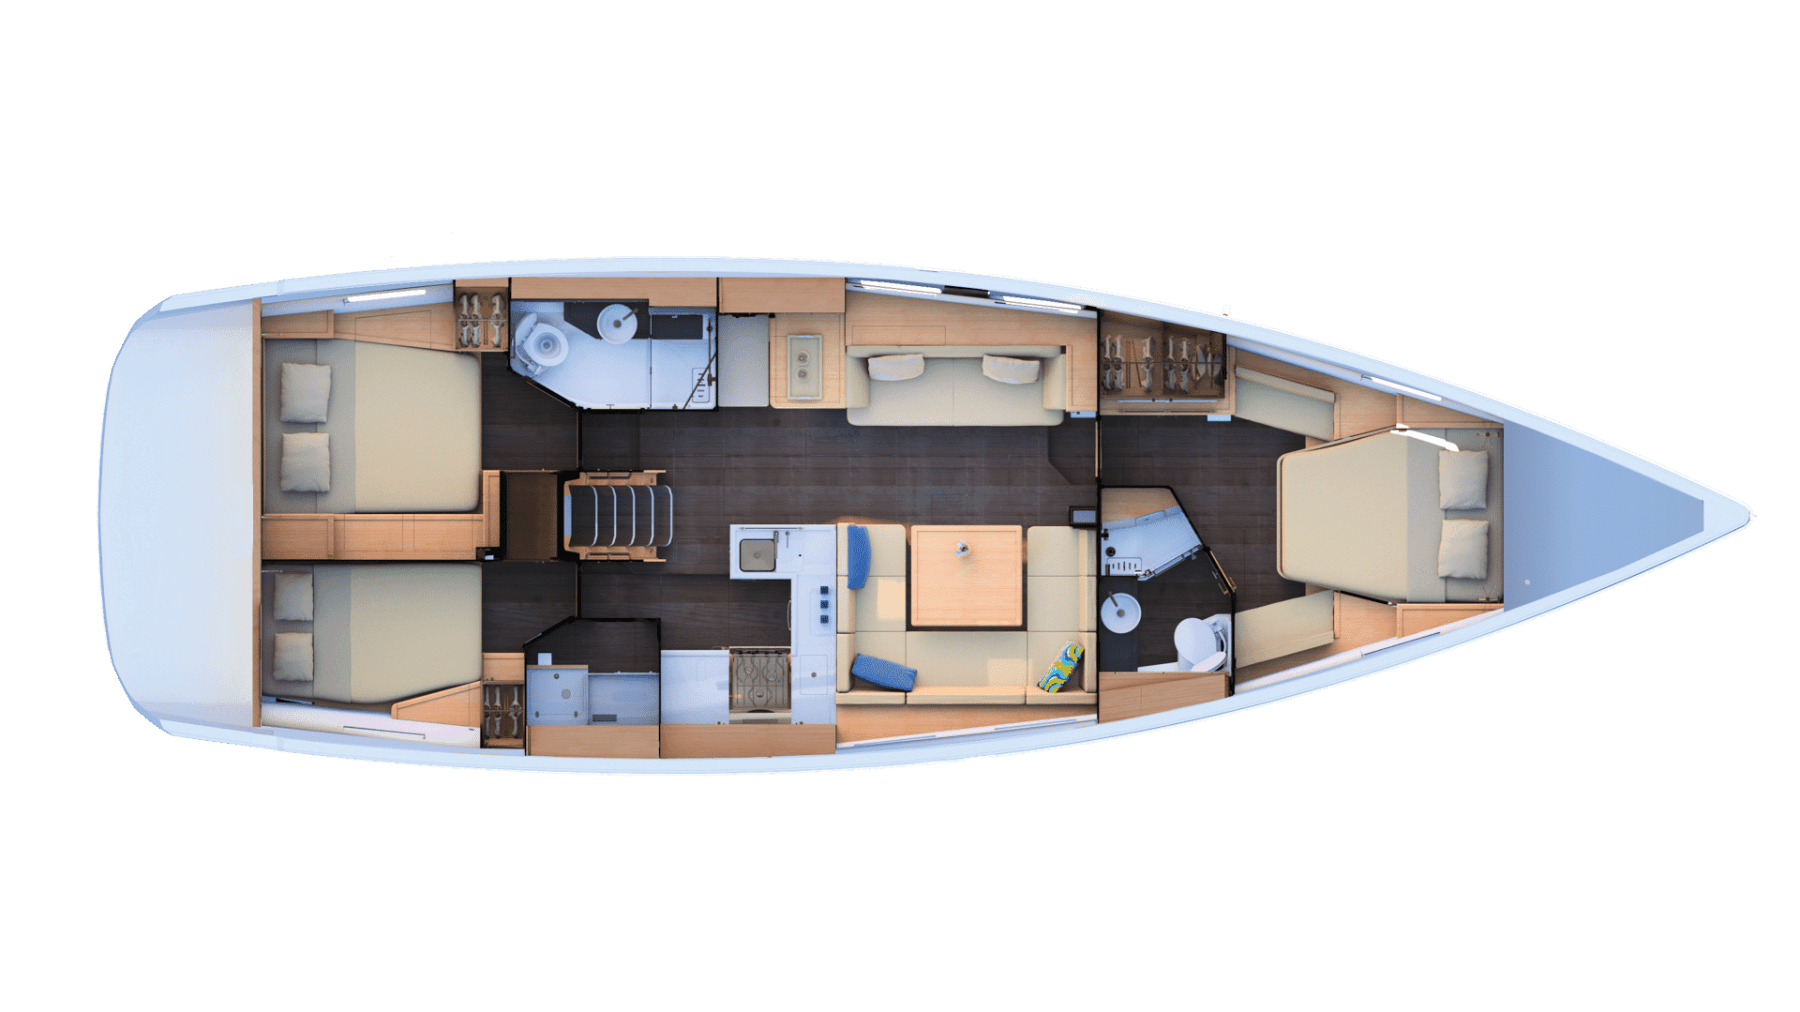 Jeanneau-51-layout-1-charter-ownership-yacht